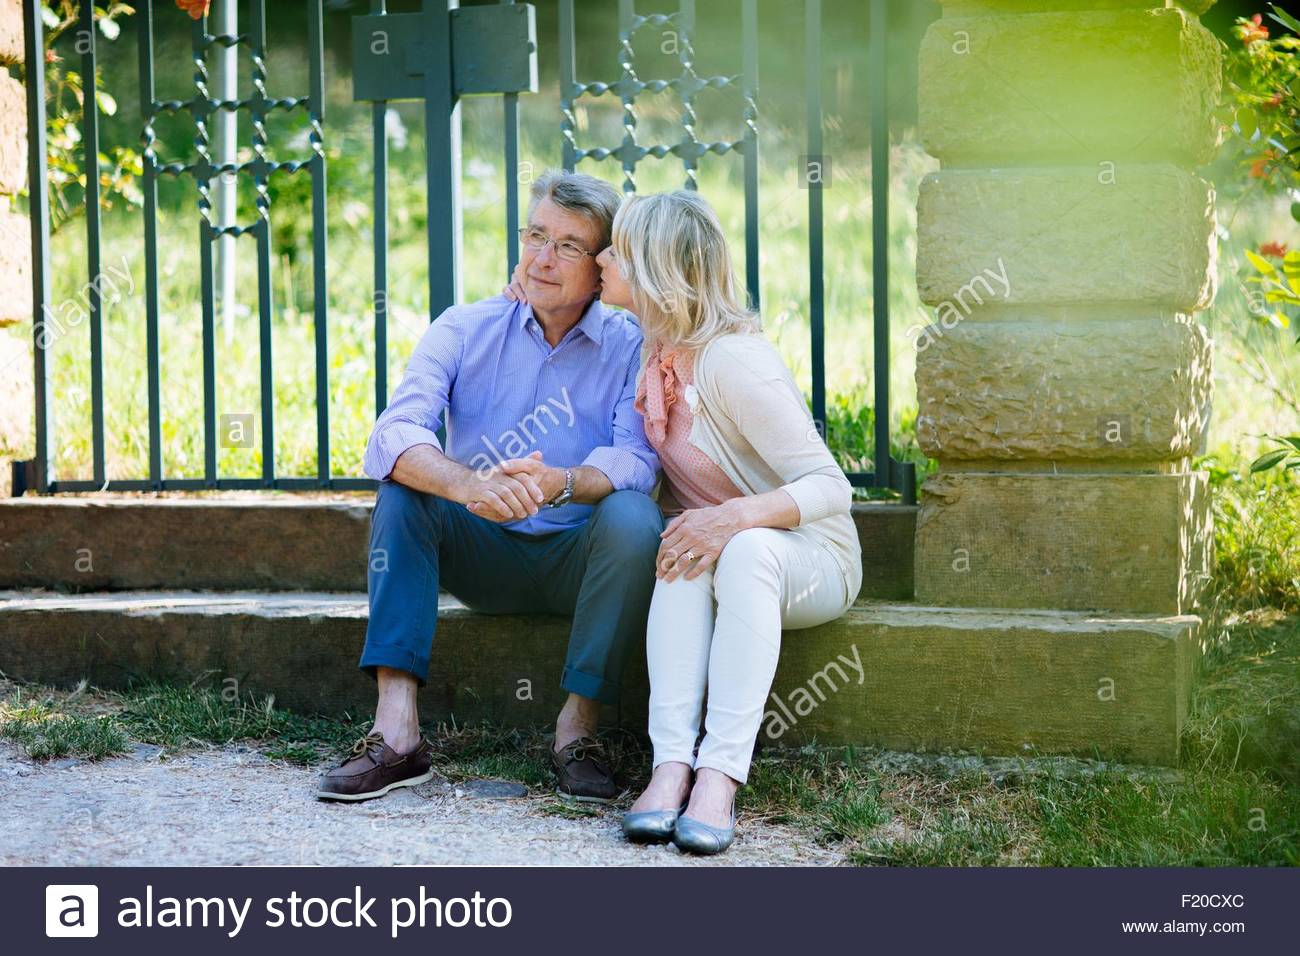 Senior couple sitting on step, woman kissing man's cheek - Stock Image